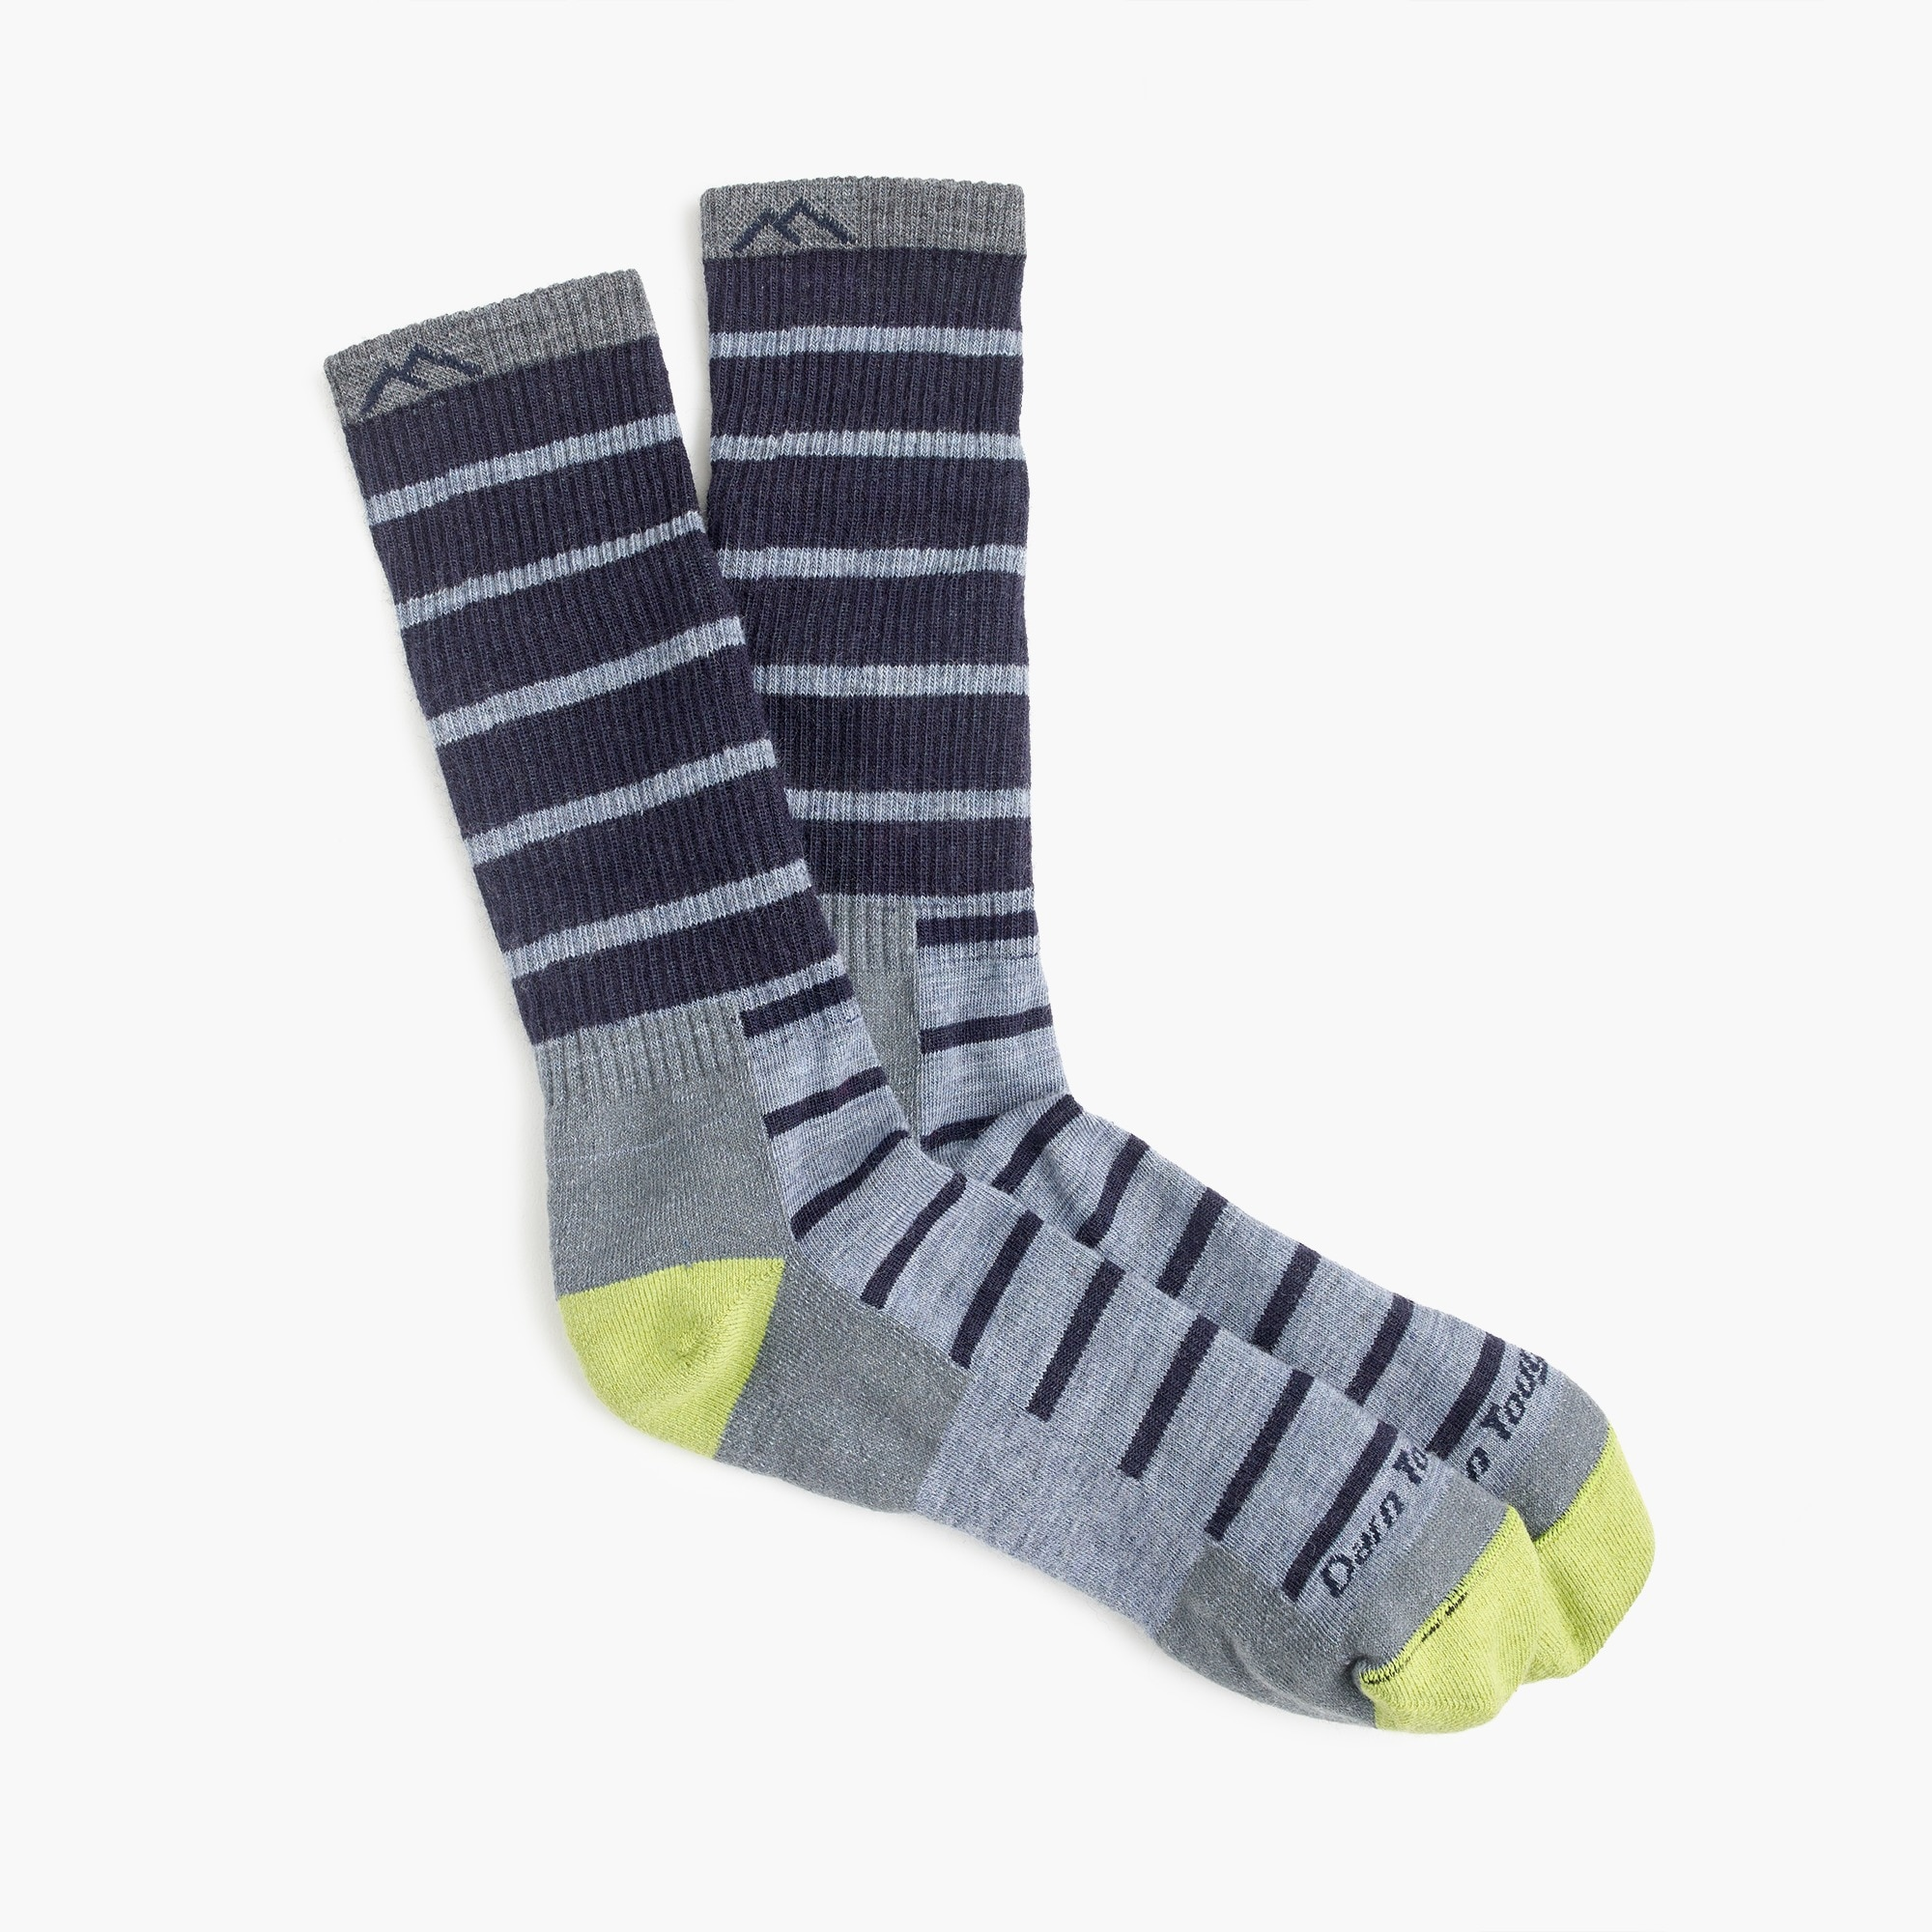 Darn Tough Vermont® for J.Crew striped socks men j.crew in good company c